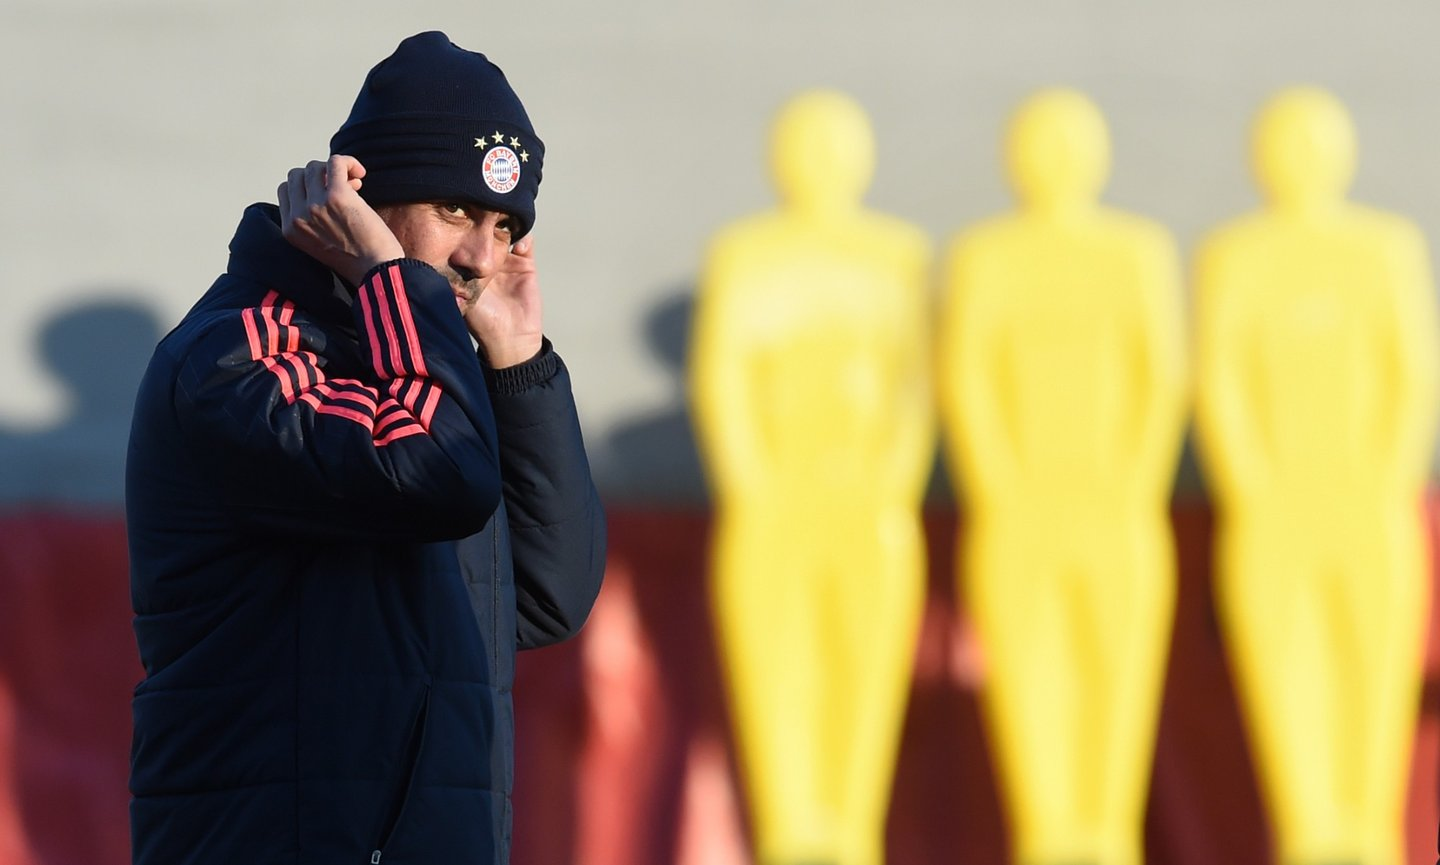 Bayern Munich's Spanish headcoach Pep Guardiola arrives for the training session on the eve of the UEFA Champions League Group F football match between Bayern Munich and Olympiakos Piraeus in Munich, southern Germany, on November 23, 2015. AFP PHOTO / CHRISTOF STACHE / AFP / CHRISTOF STACHE (Photo credit should read CHRISTOF STACHE/AFP/Getty Images)